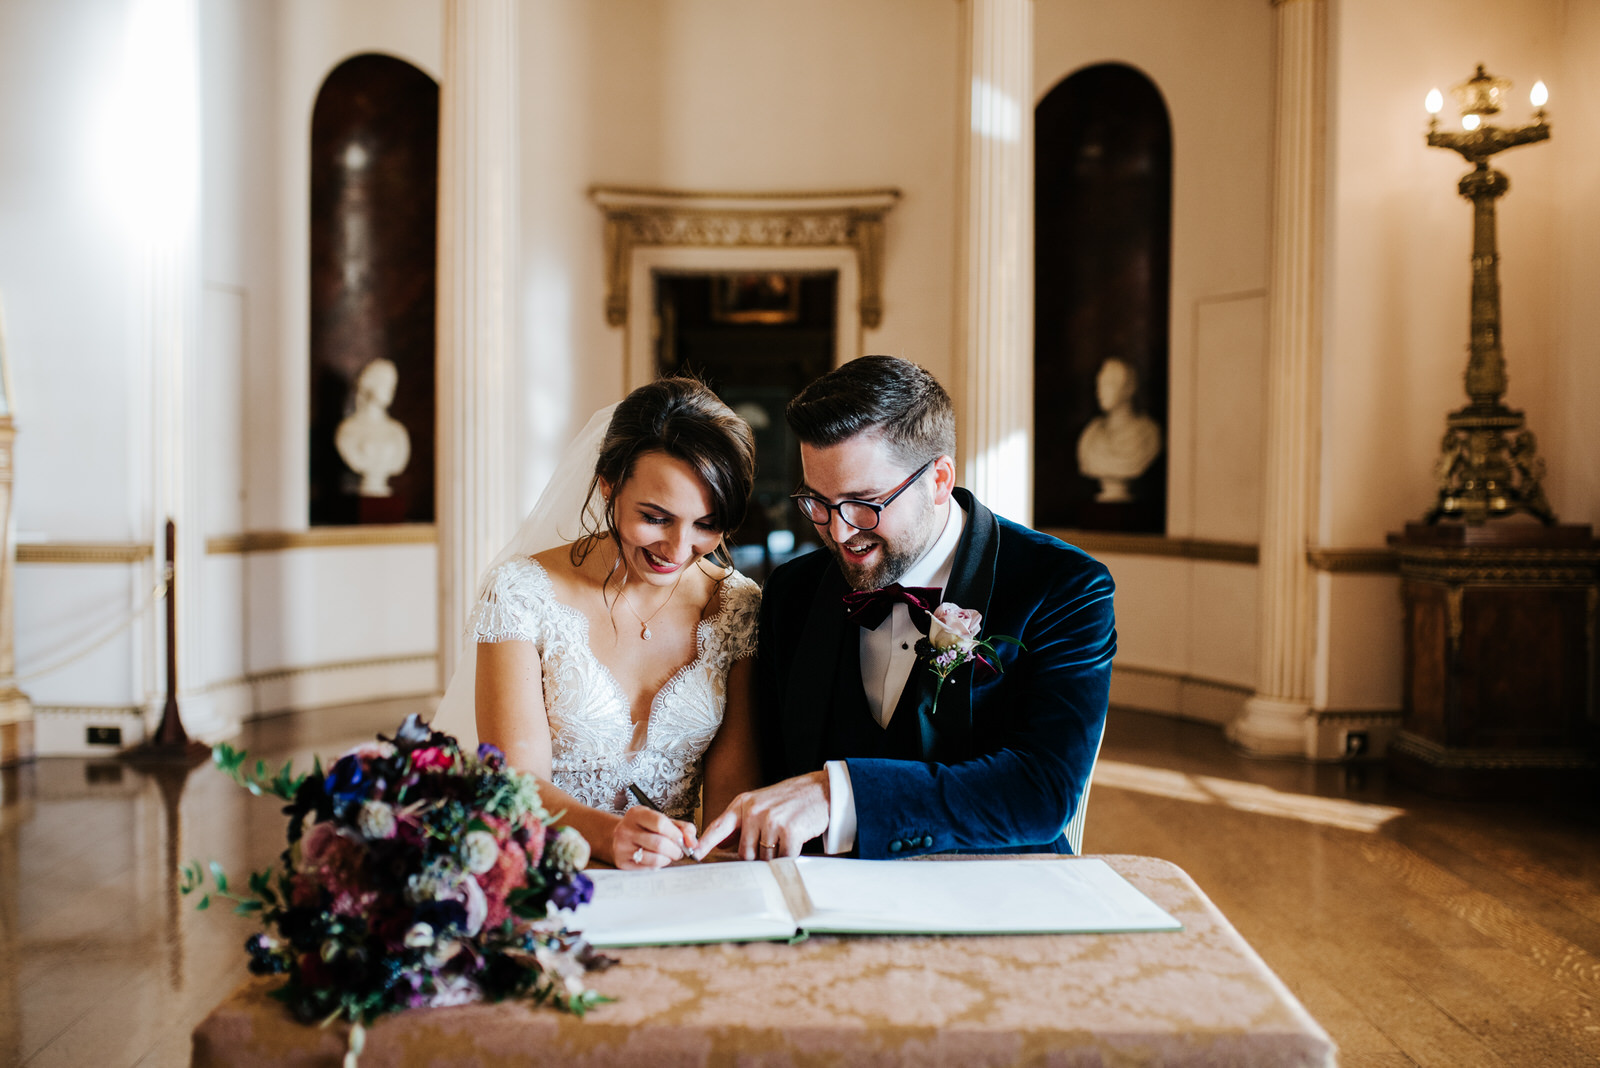 Bride and groom look extremely happy as they sit and sign wedding register